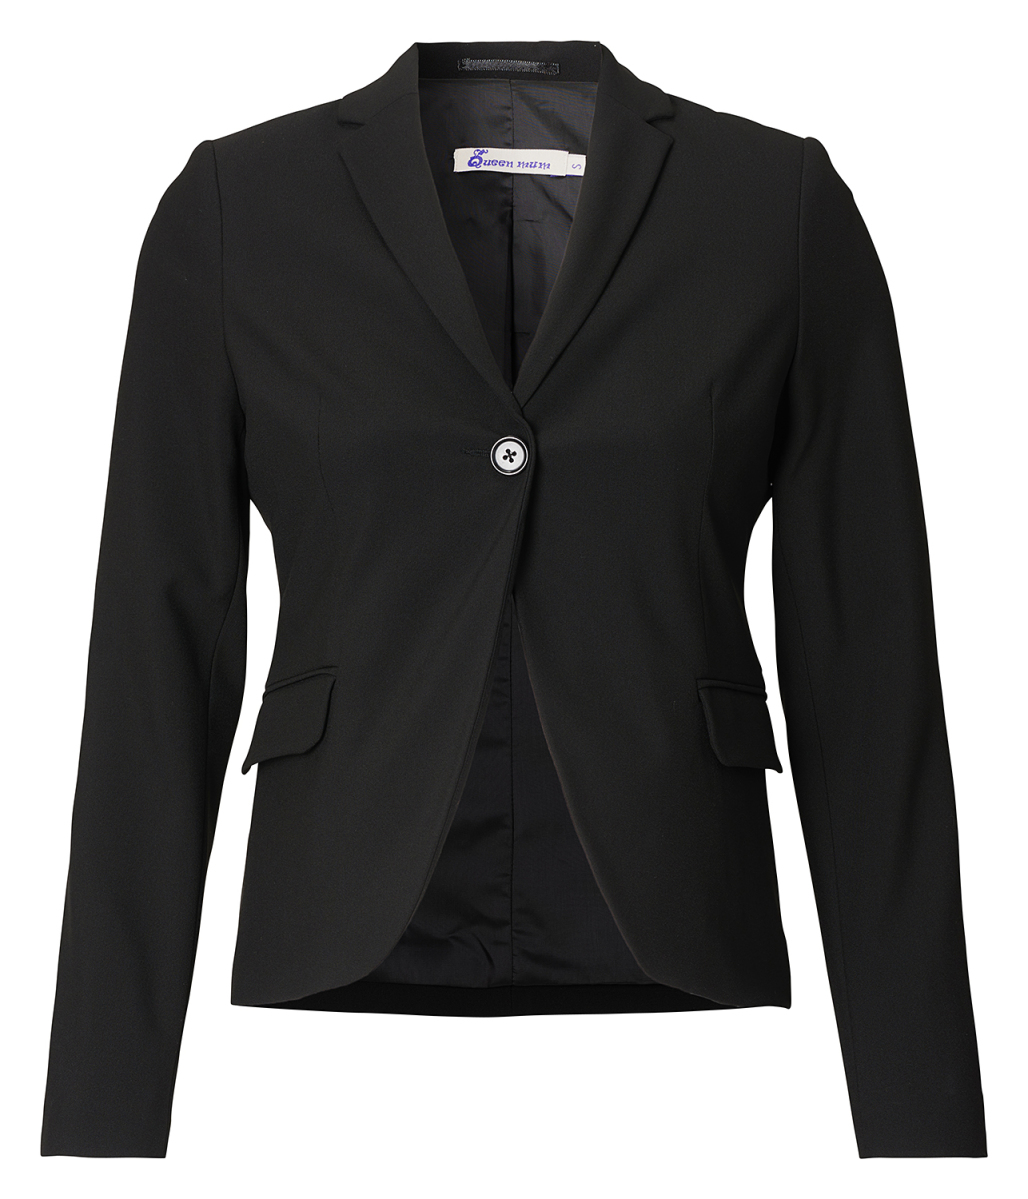 Queen mum Blazer black